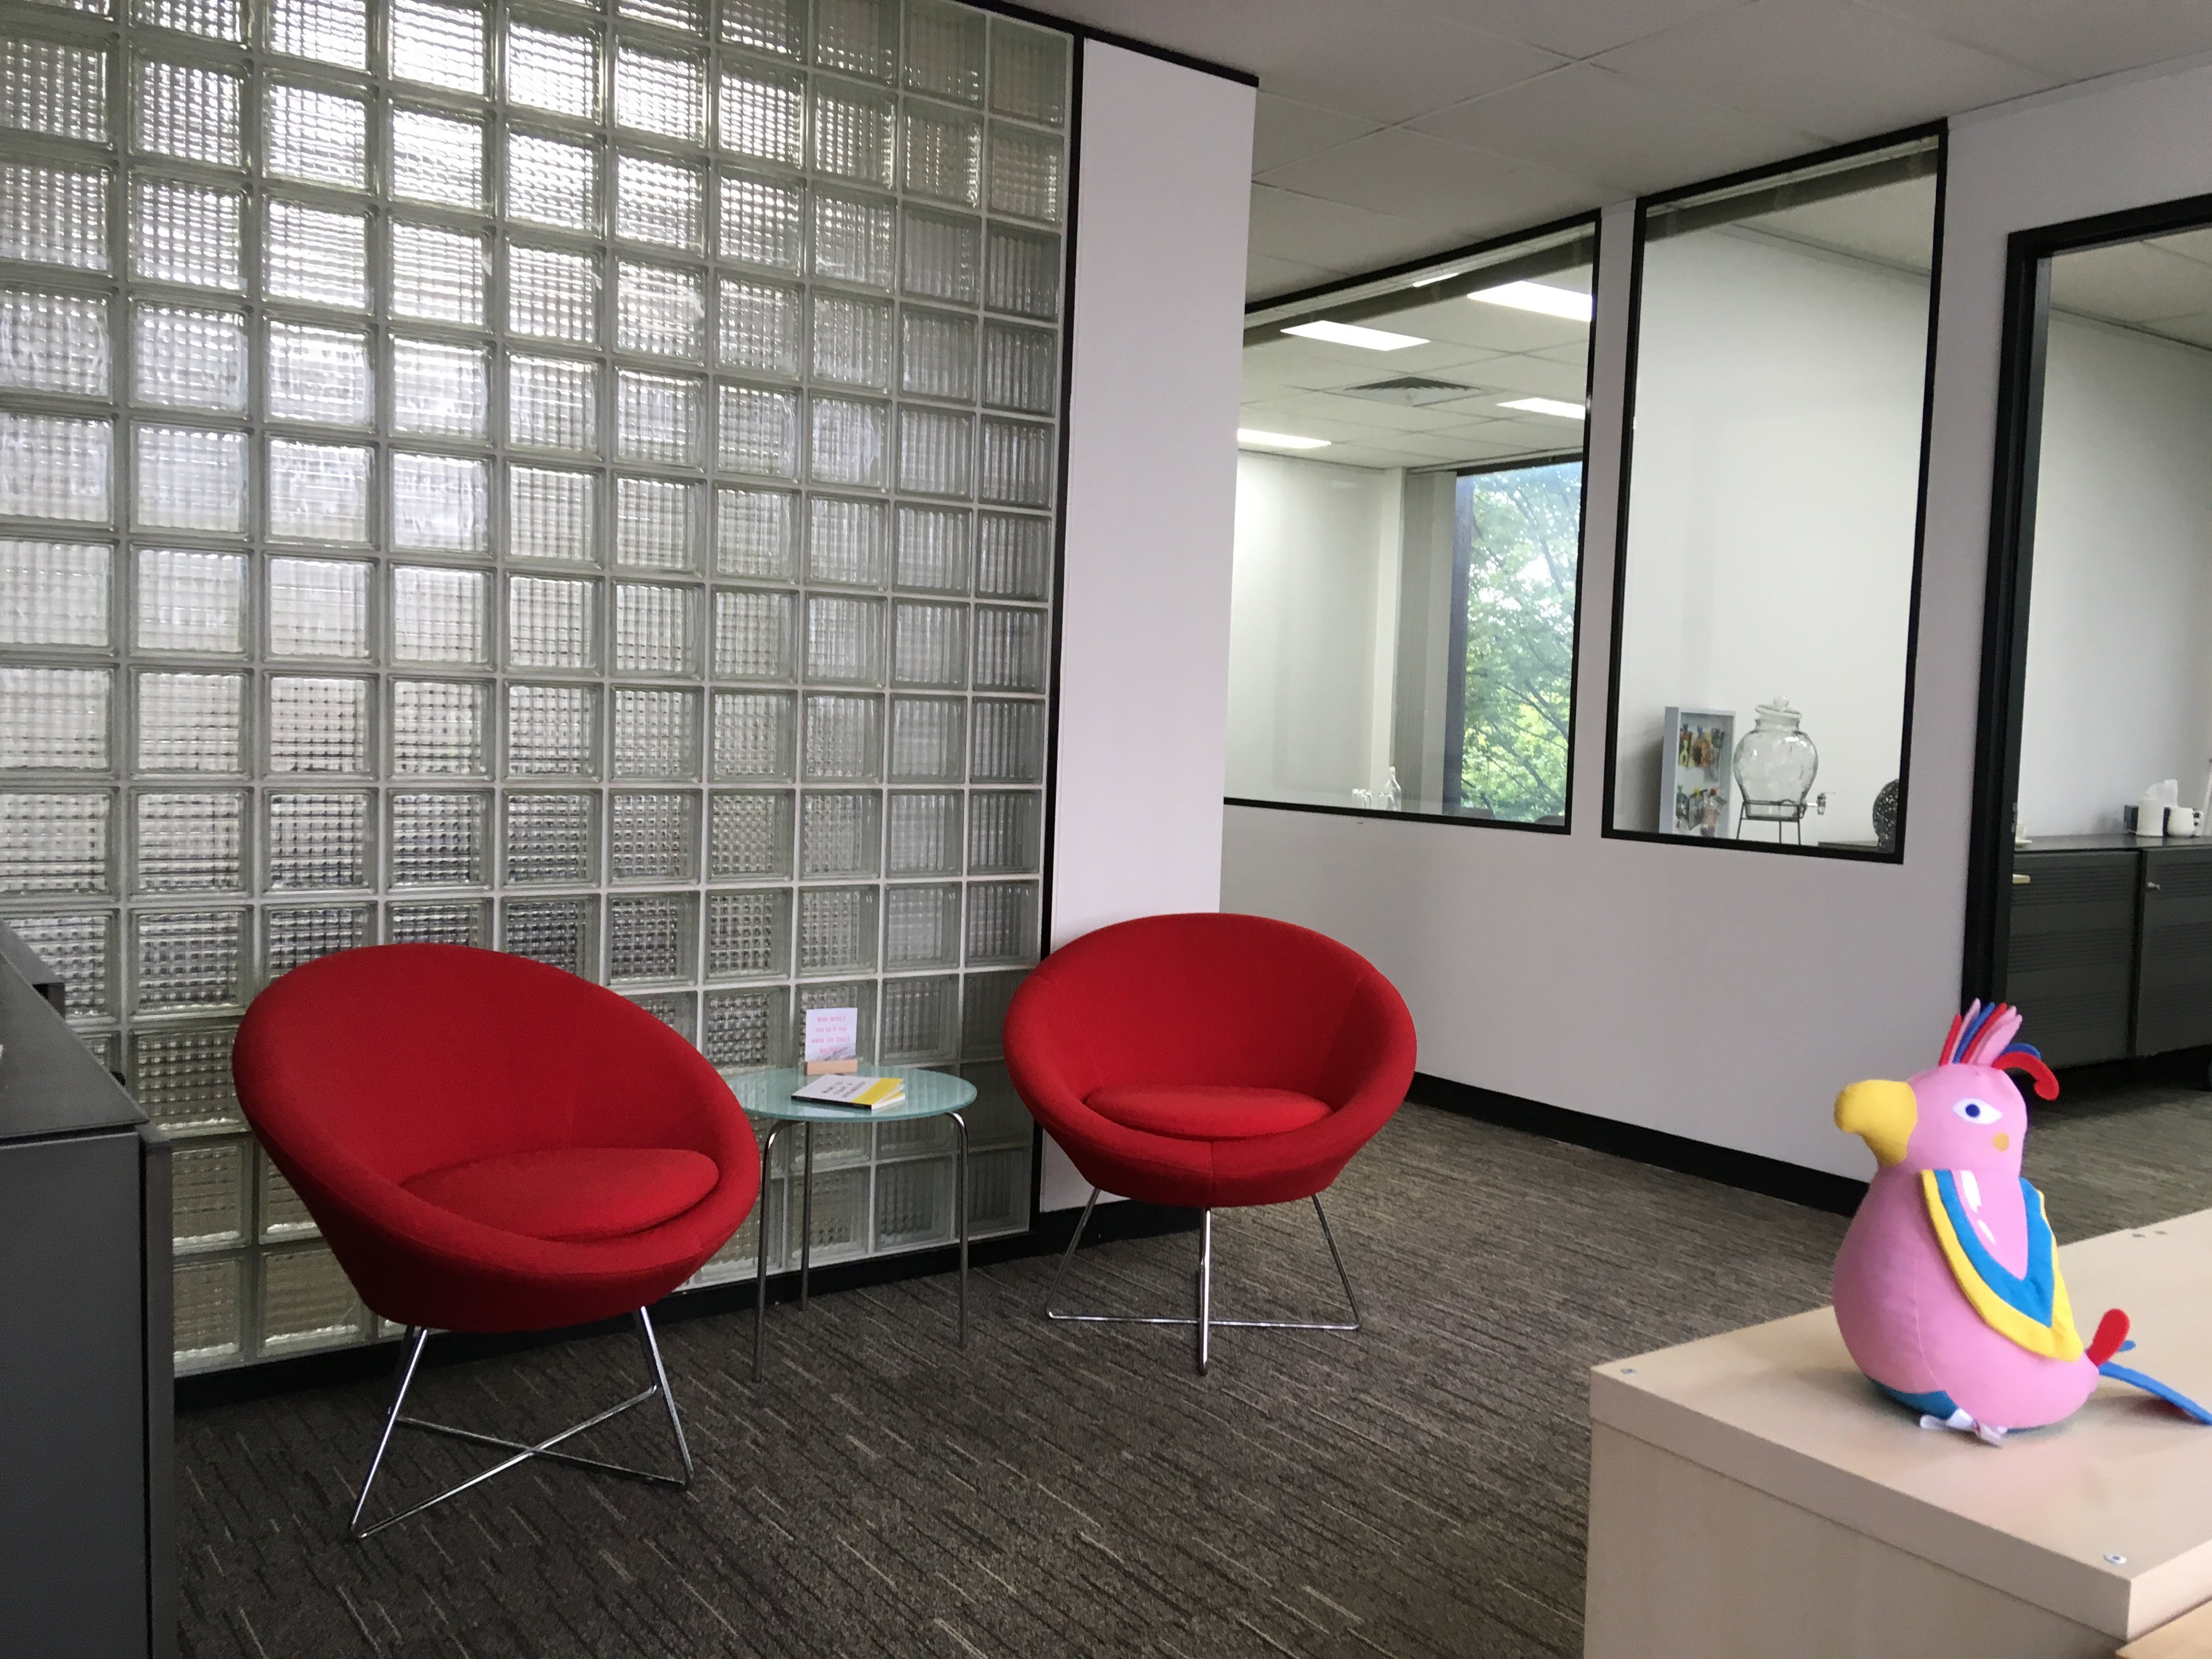 Meeting room at Professional office, image 3